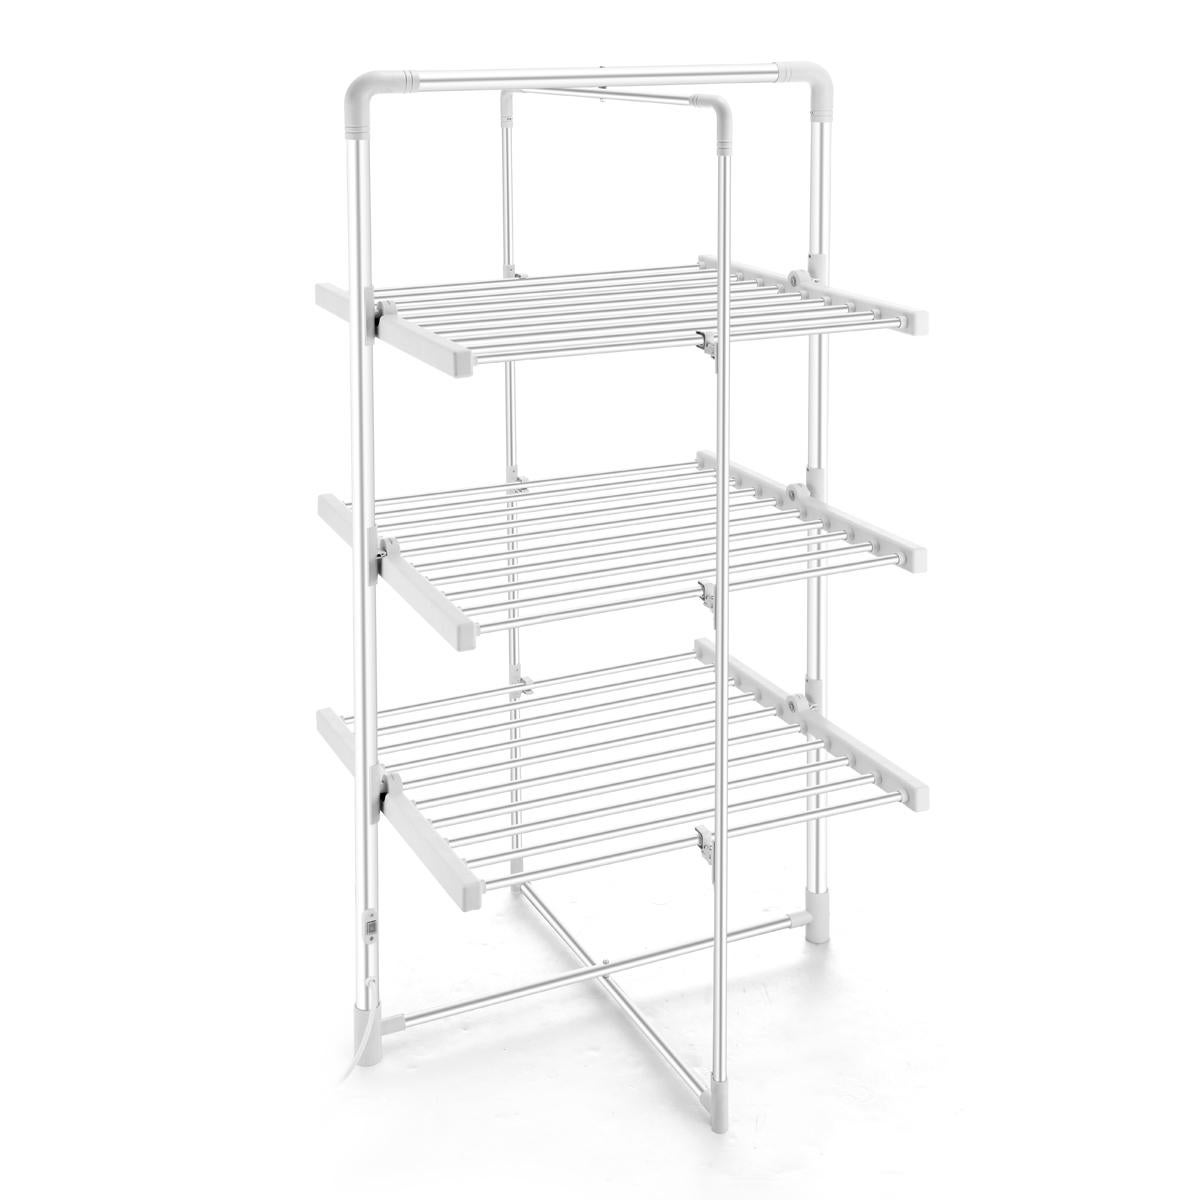 300w 3 tier heated electric clothes towel drying rack foldable